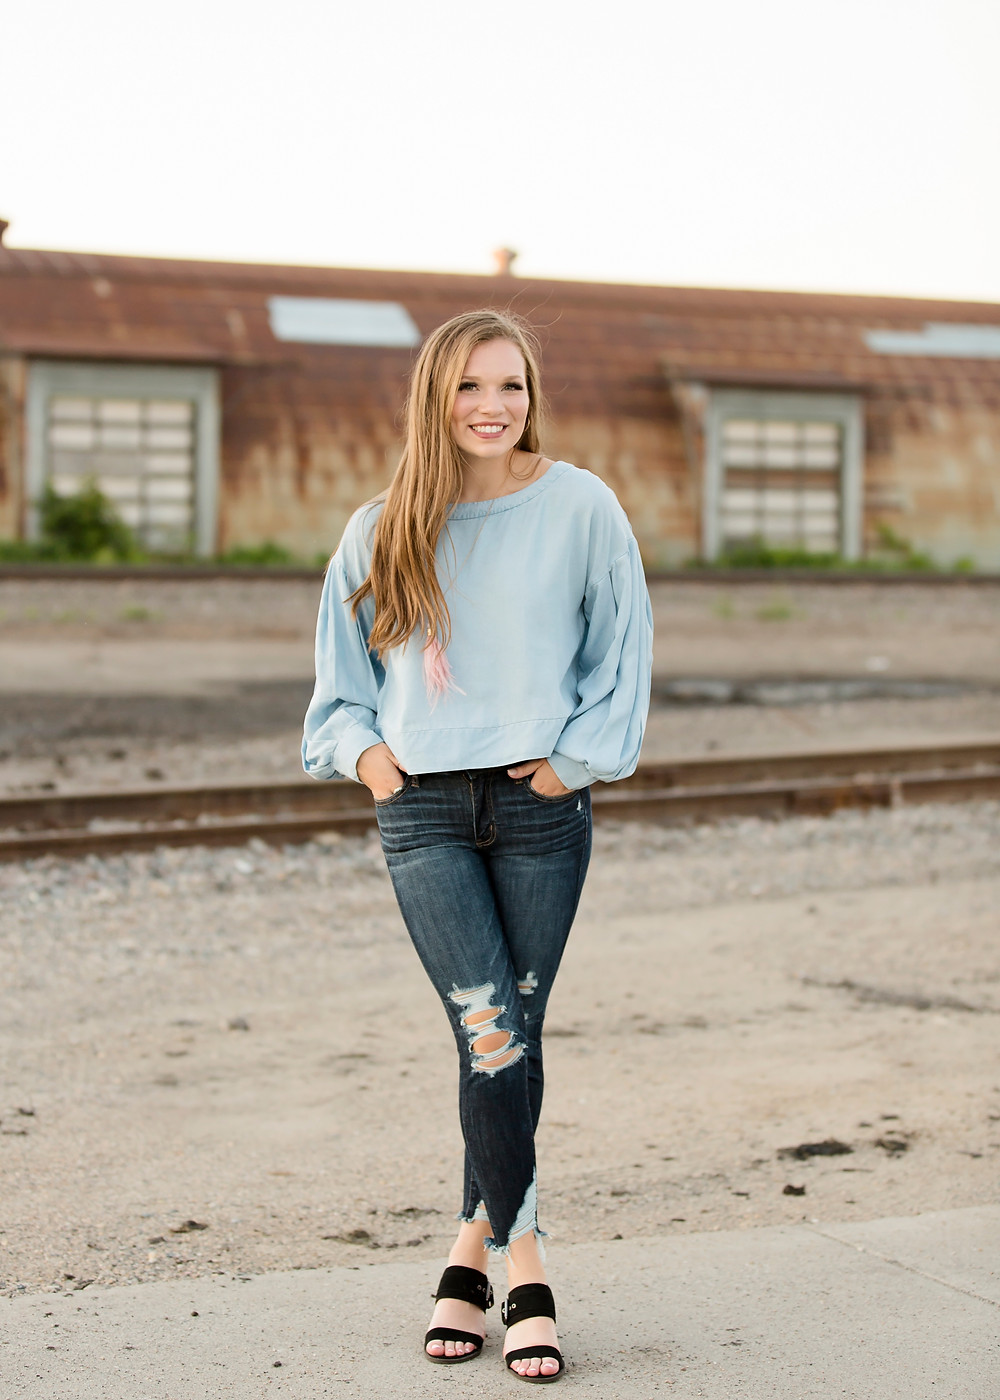 Senior pictures with print release